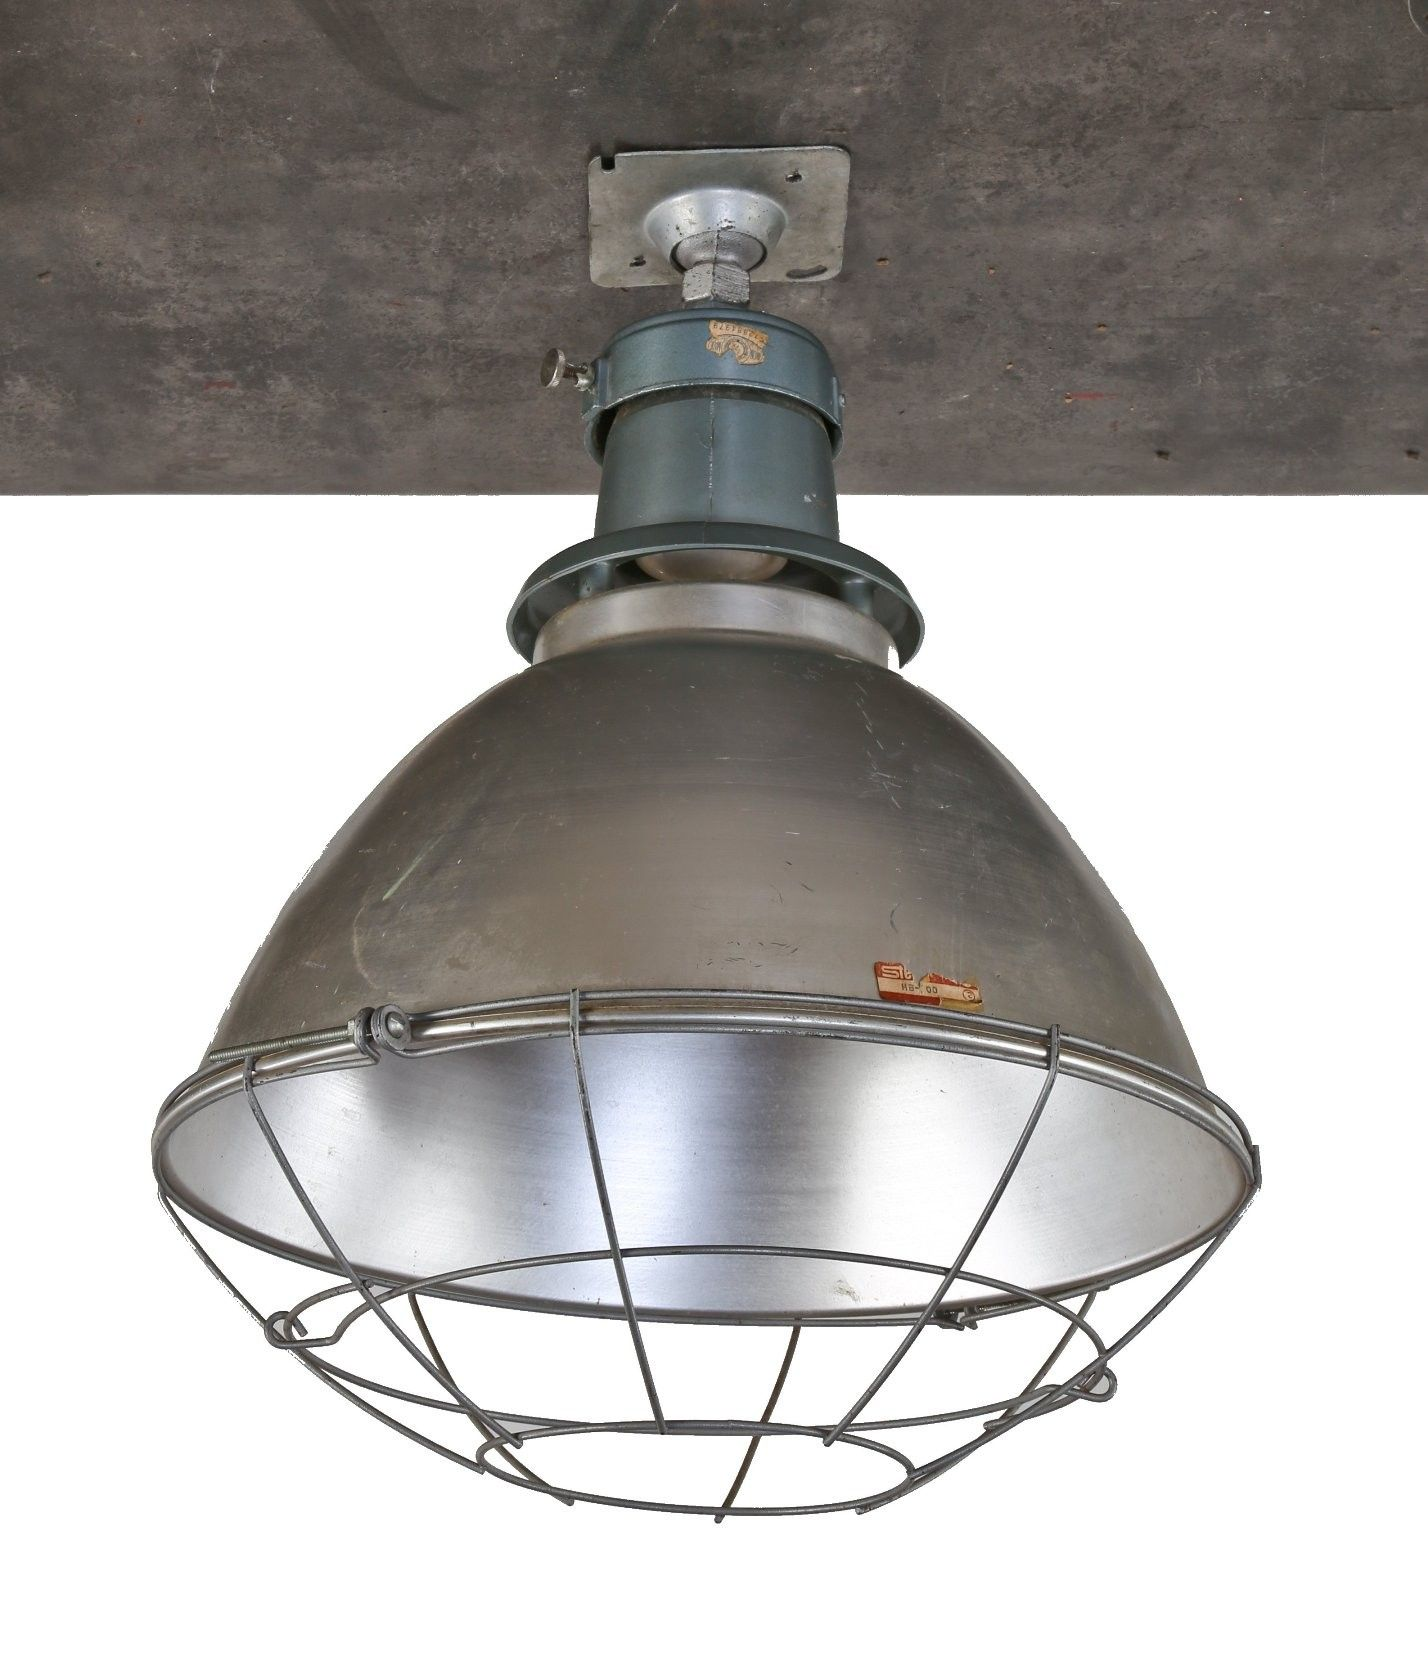 Single Oversized C 1950 S American Industrial Chicago Public School Gymnasium Deep Bowl Pendant Light W Vintage Industrial Lighting Bowl Pendant Pendant Light